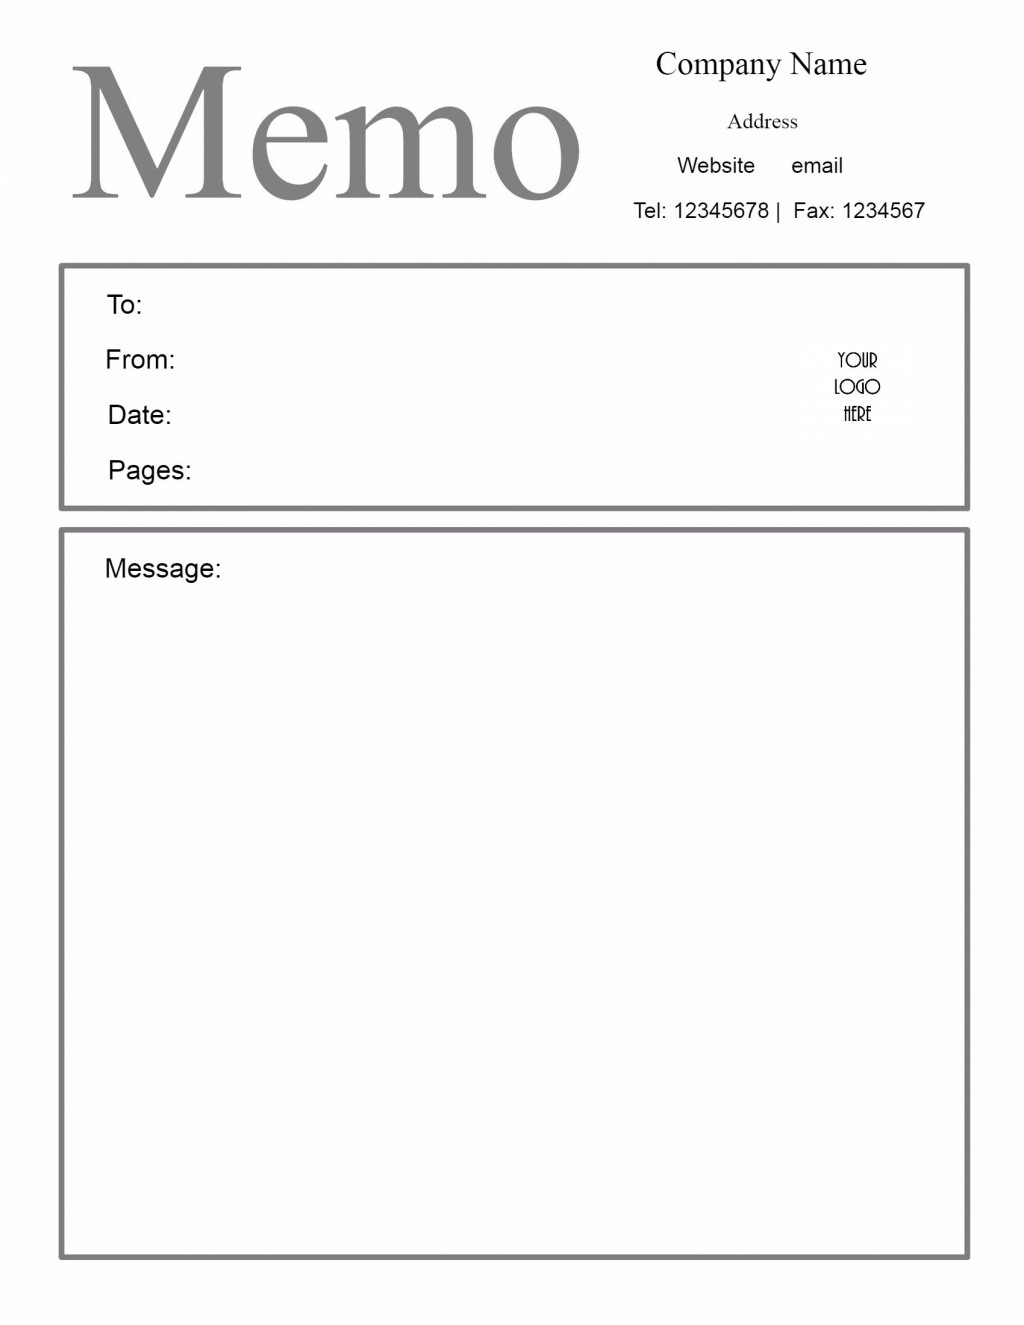 009 Outstanding Microsoft Word Memo Template High Definition  Professional 2010 Free LegalLarge